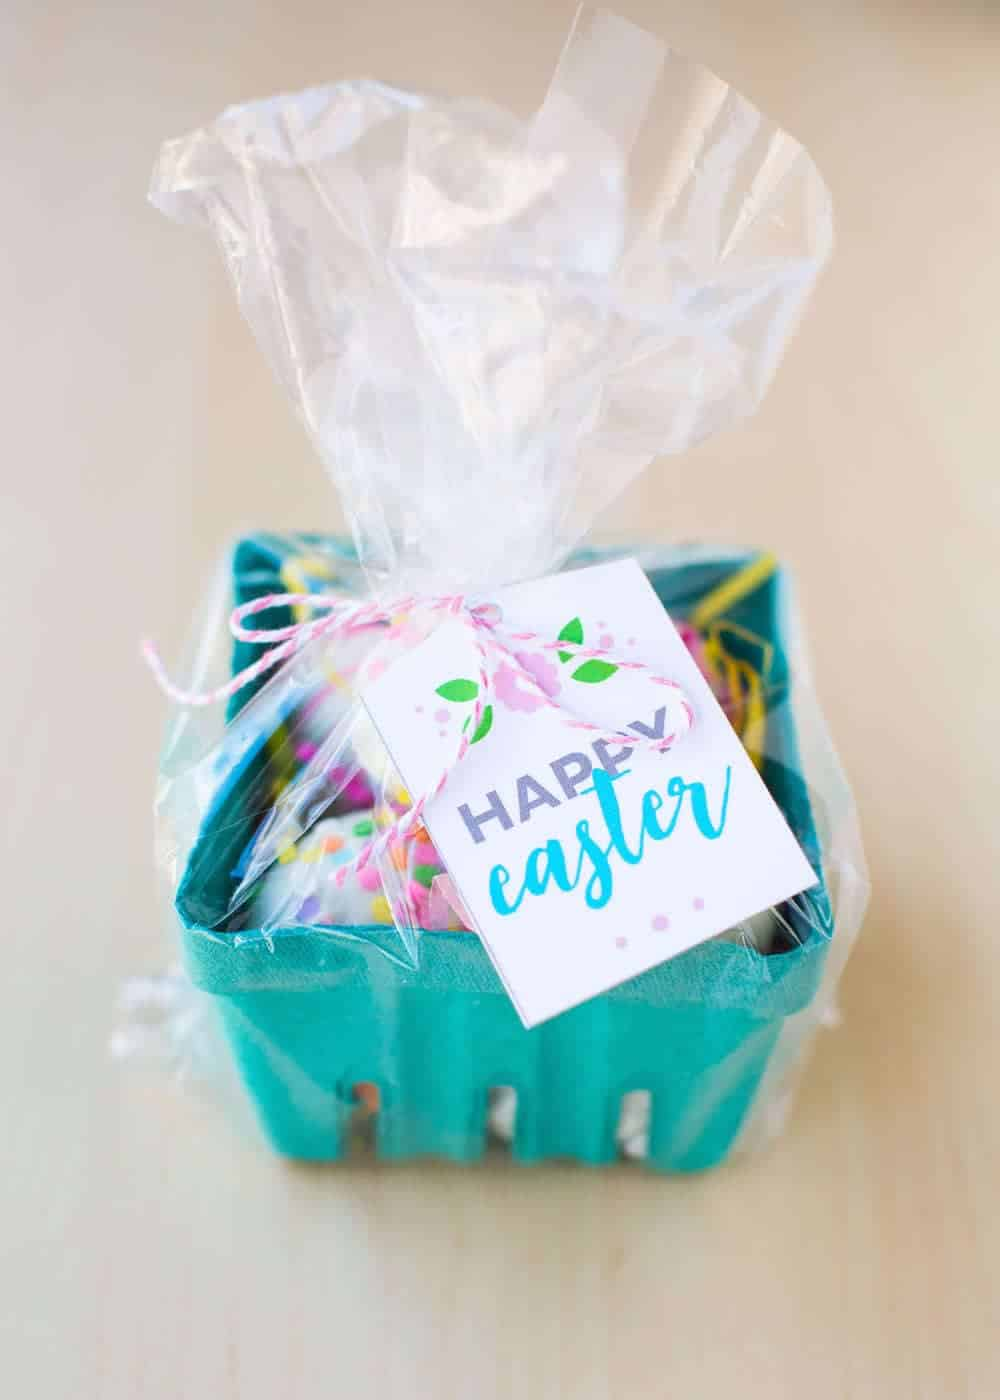 Decorated Cadbury Eggs Easter gift idea